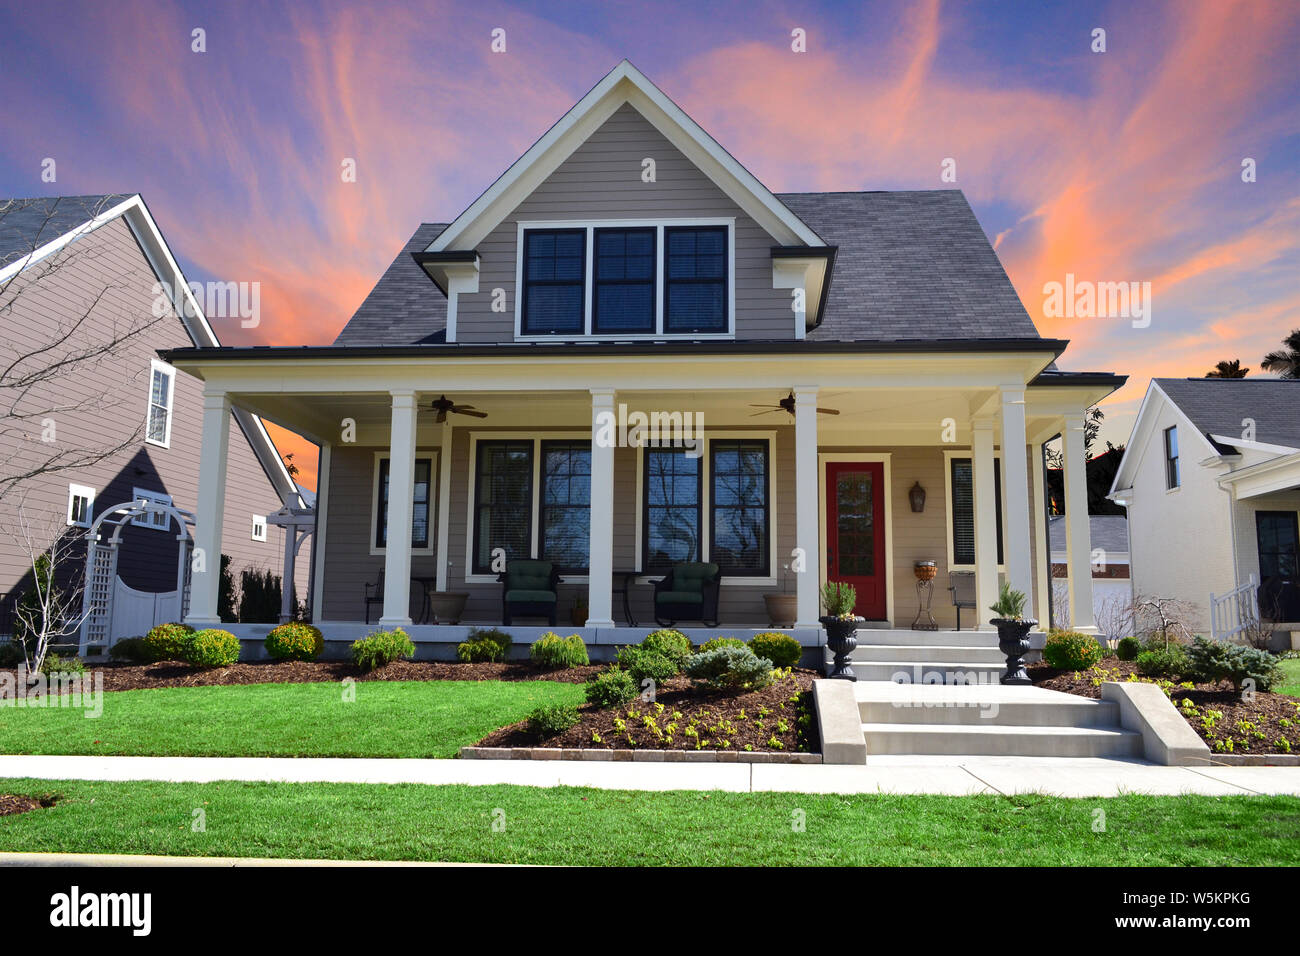 Sunset Behind A Single Family Suburban Craftsman House With Big Front Porch White Pillars And A Red Front Door Stock Photo Alamy